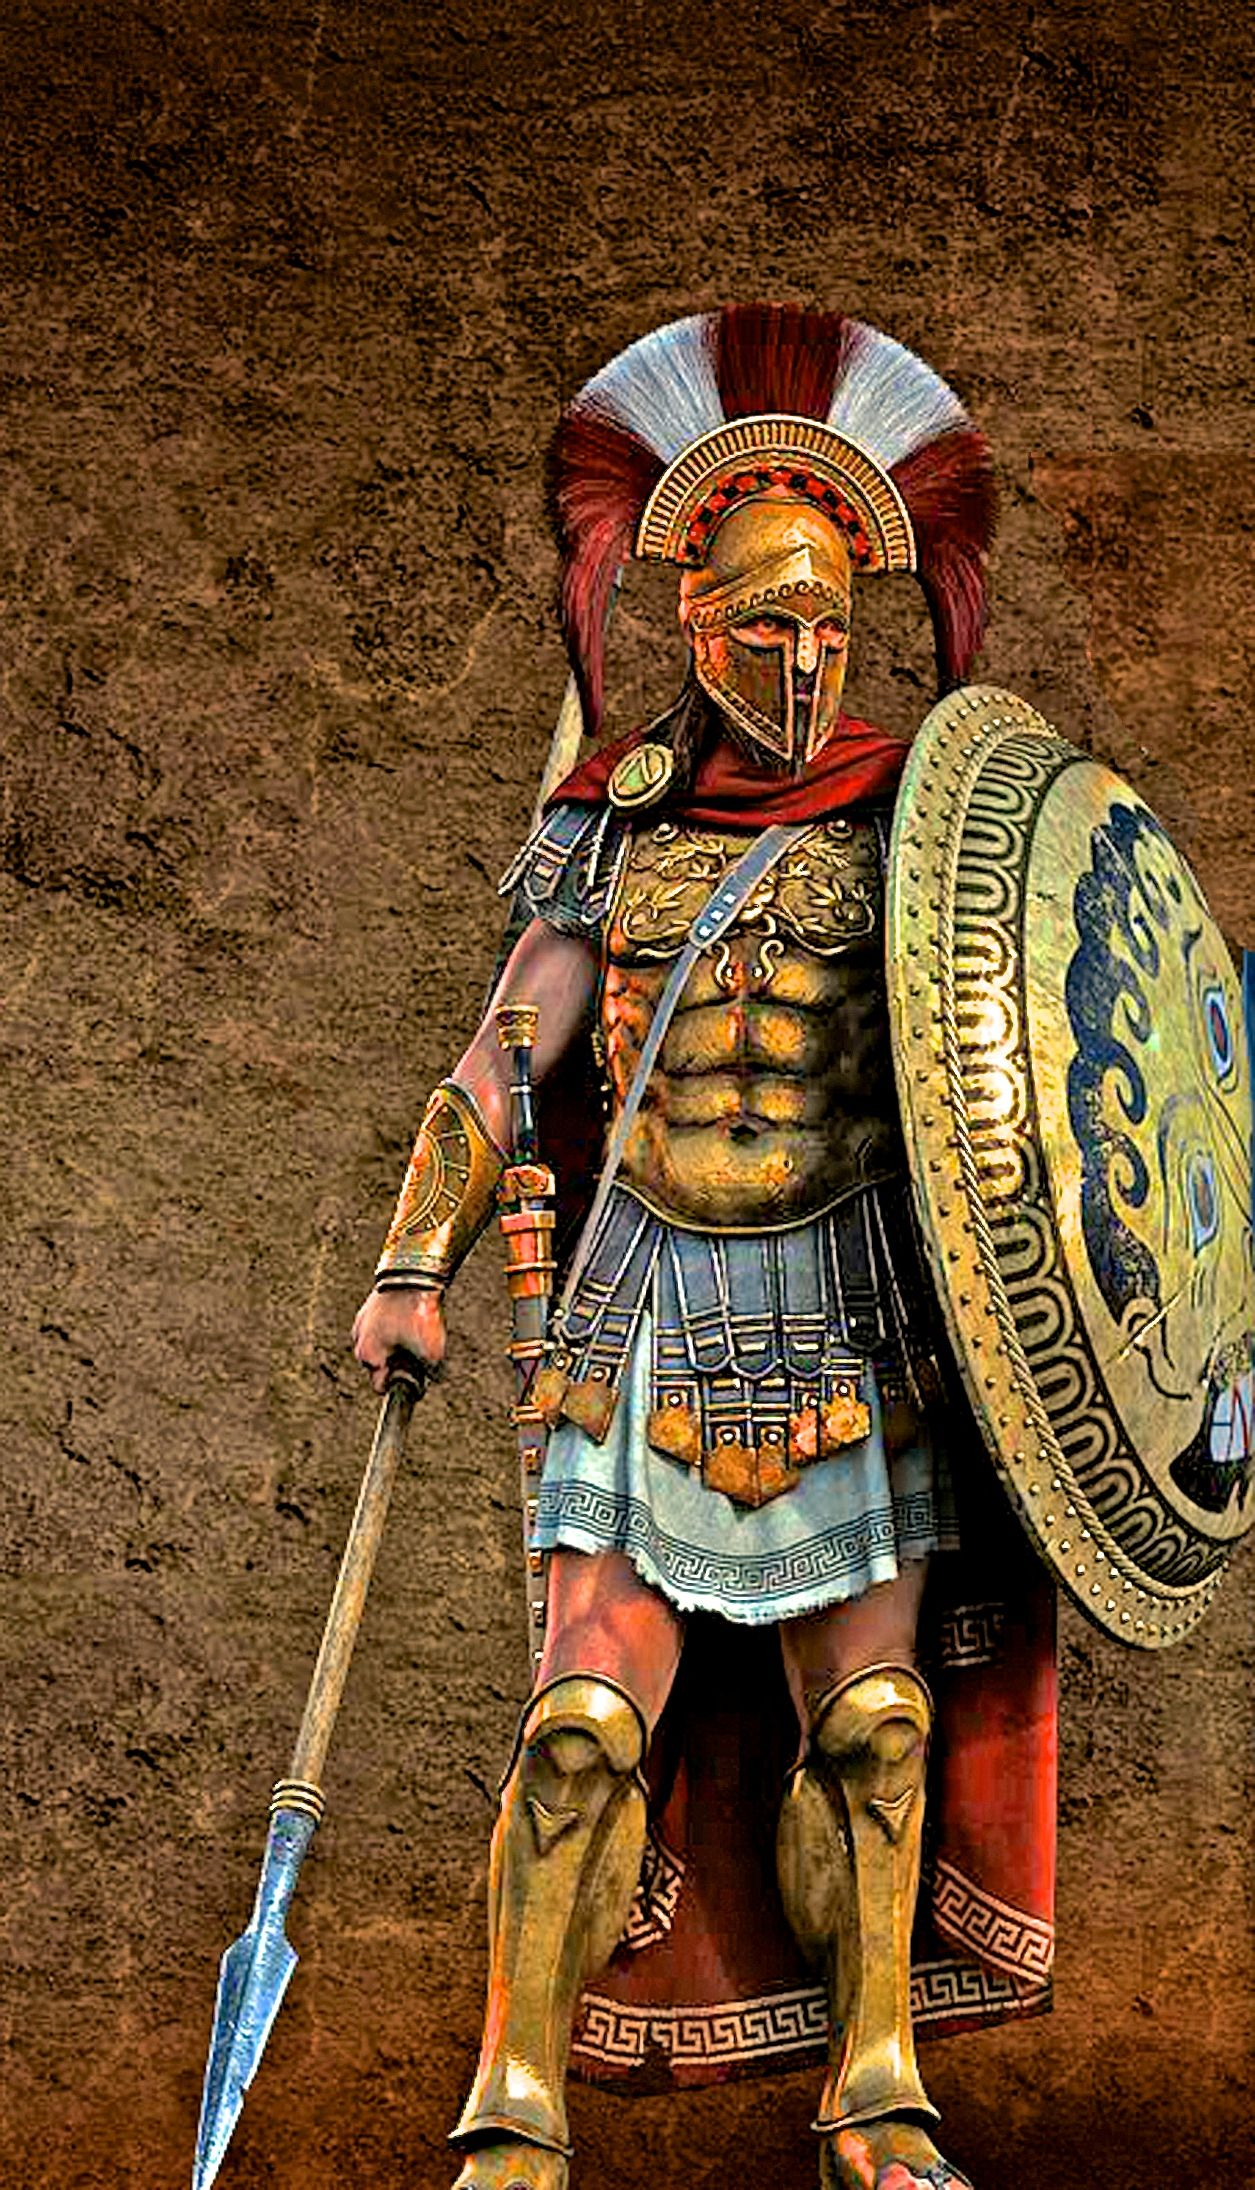 445623e3c Illustration of a Lacedaemonian / Spartan hoplite officer. The shield and  kilt (can we just call them skirts?) is particularly cool.